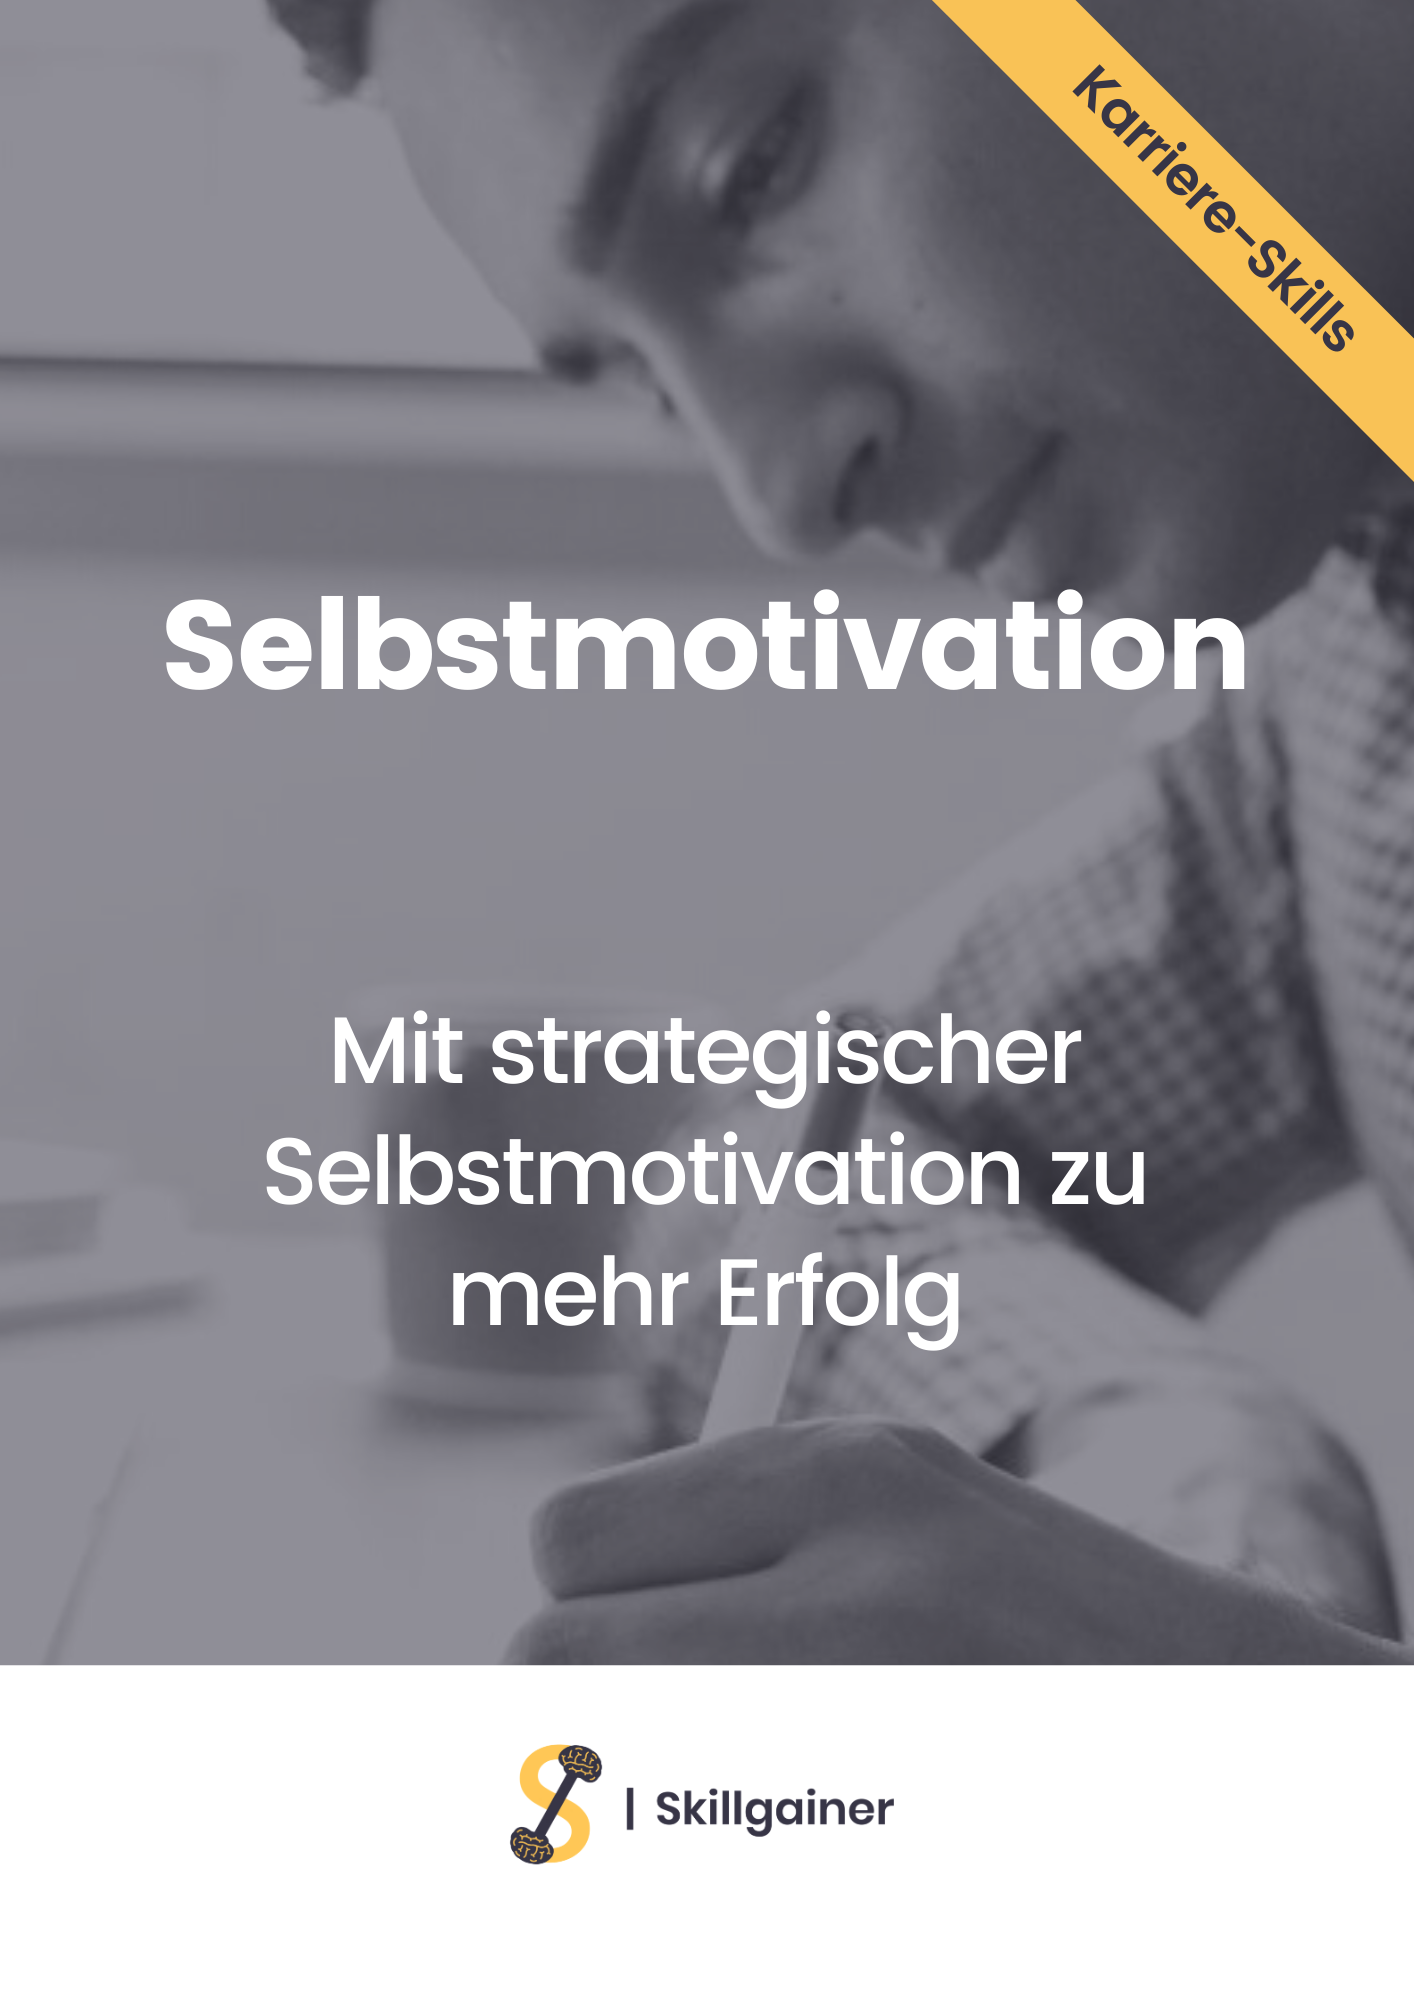 Talentpool Cover: Selbstmotivation